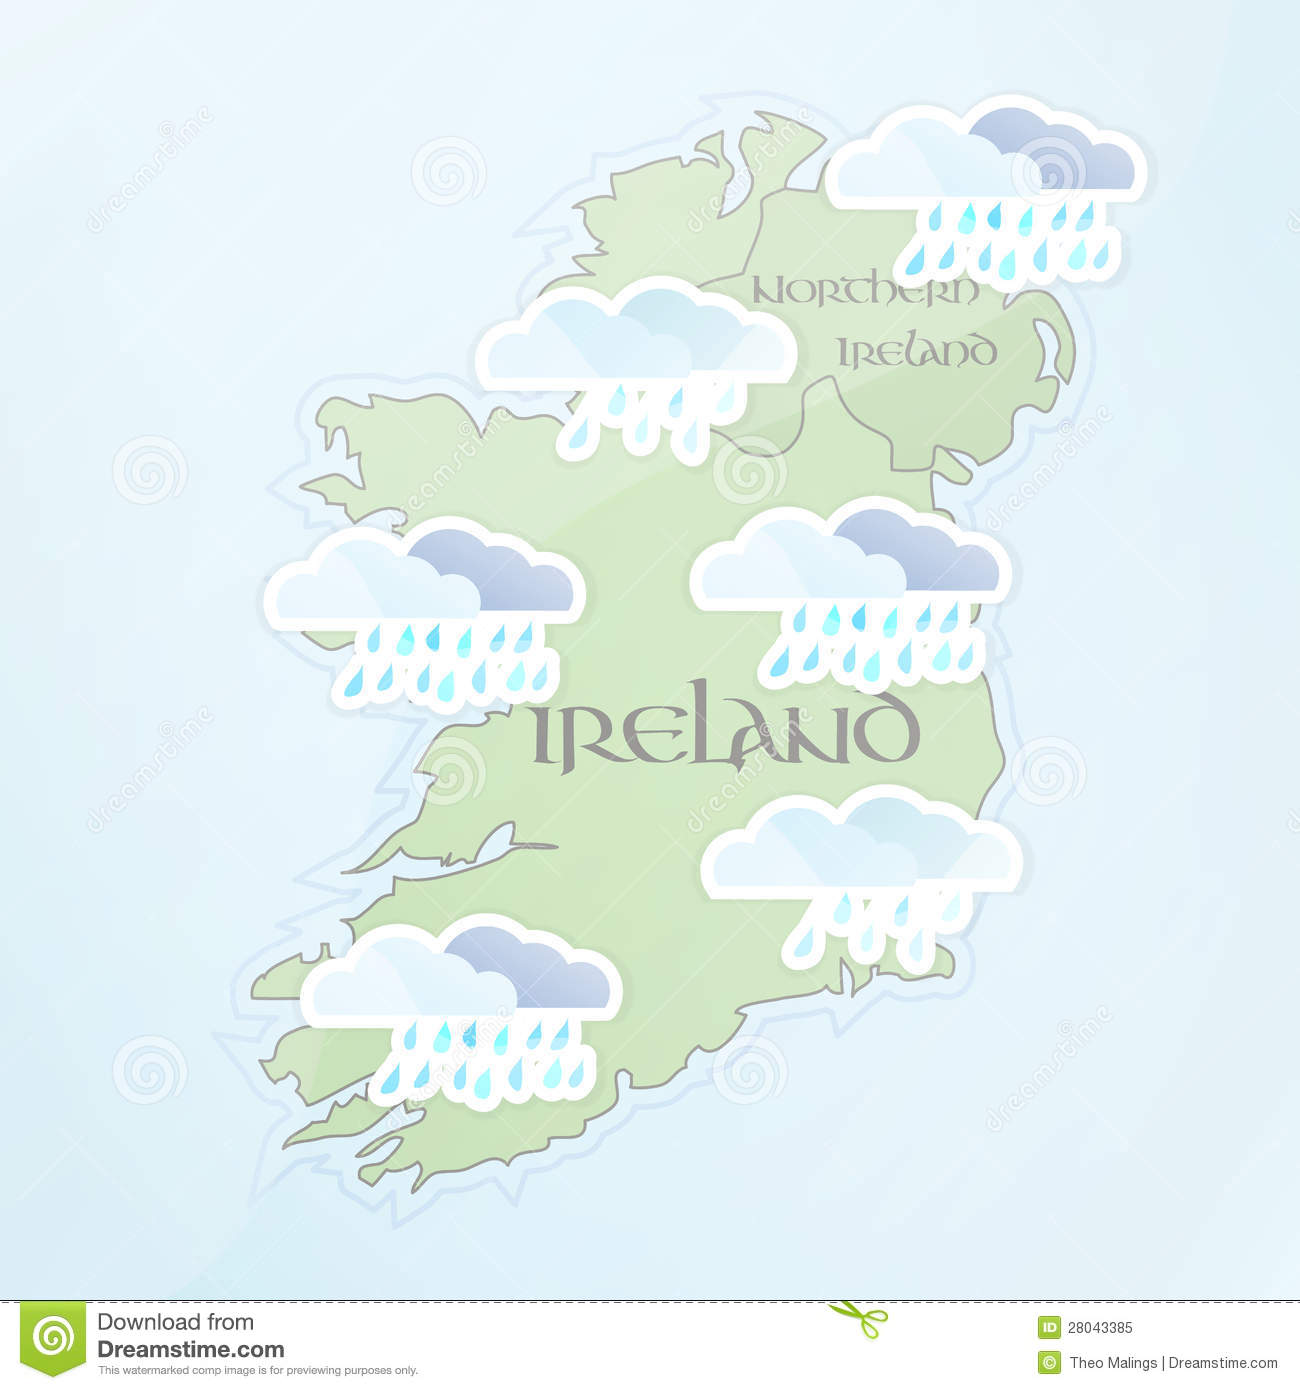 The irish weather forecast for july rain rain and more rain